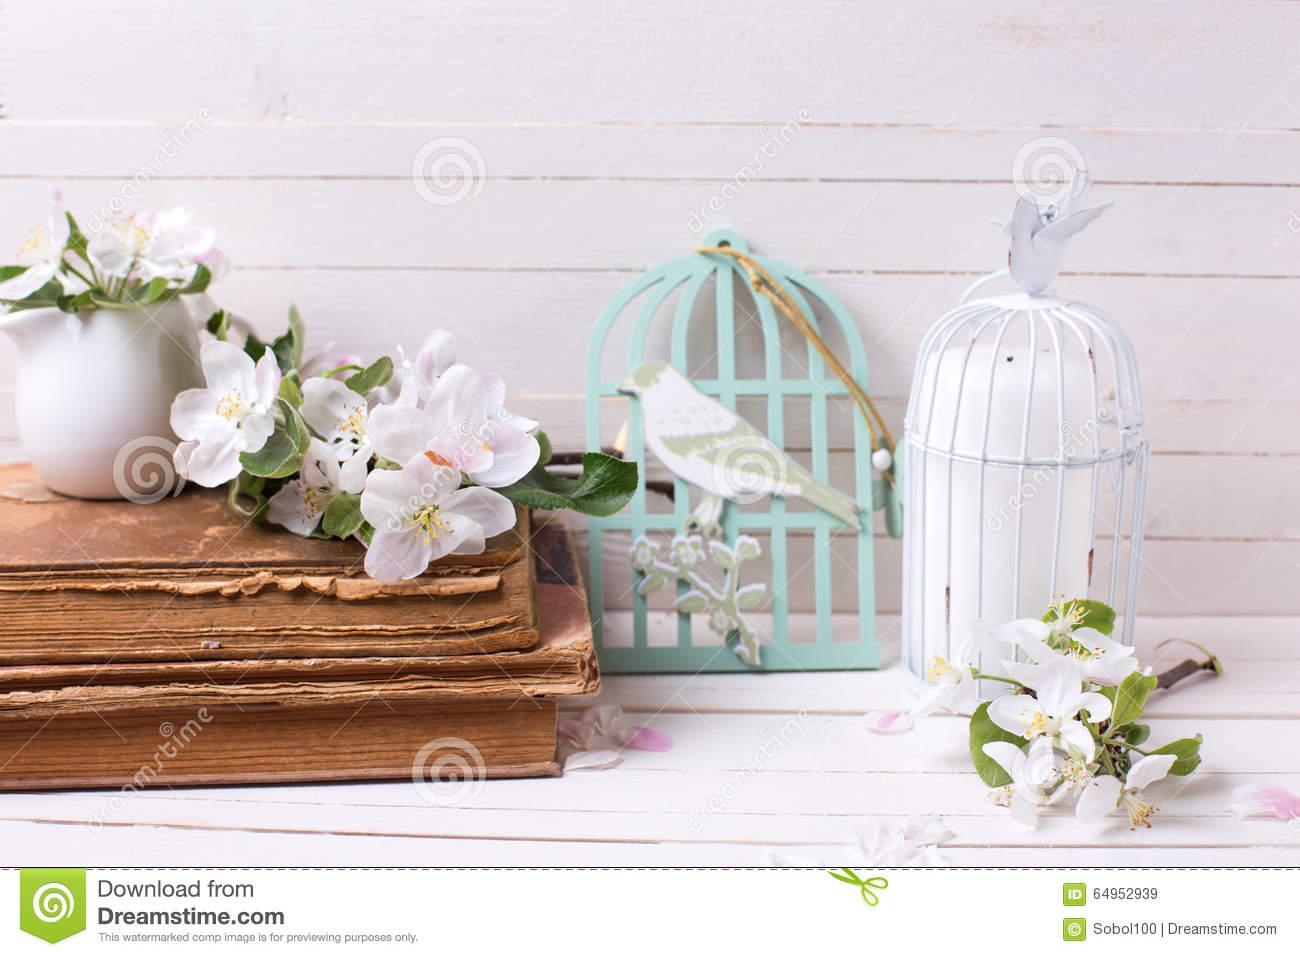 Apple Blossom, Old Books And Candle In Decorative Bird Cage